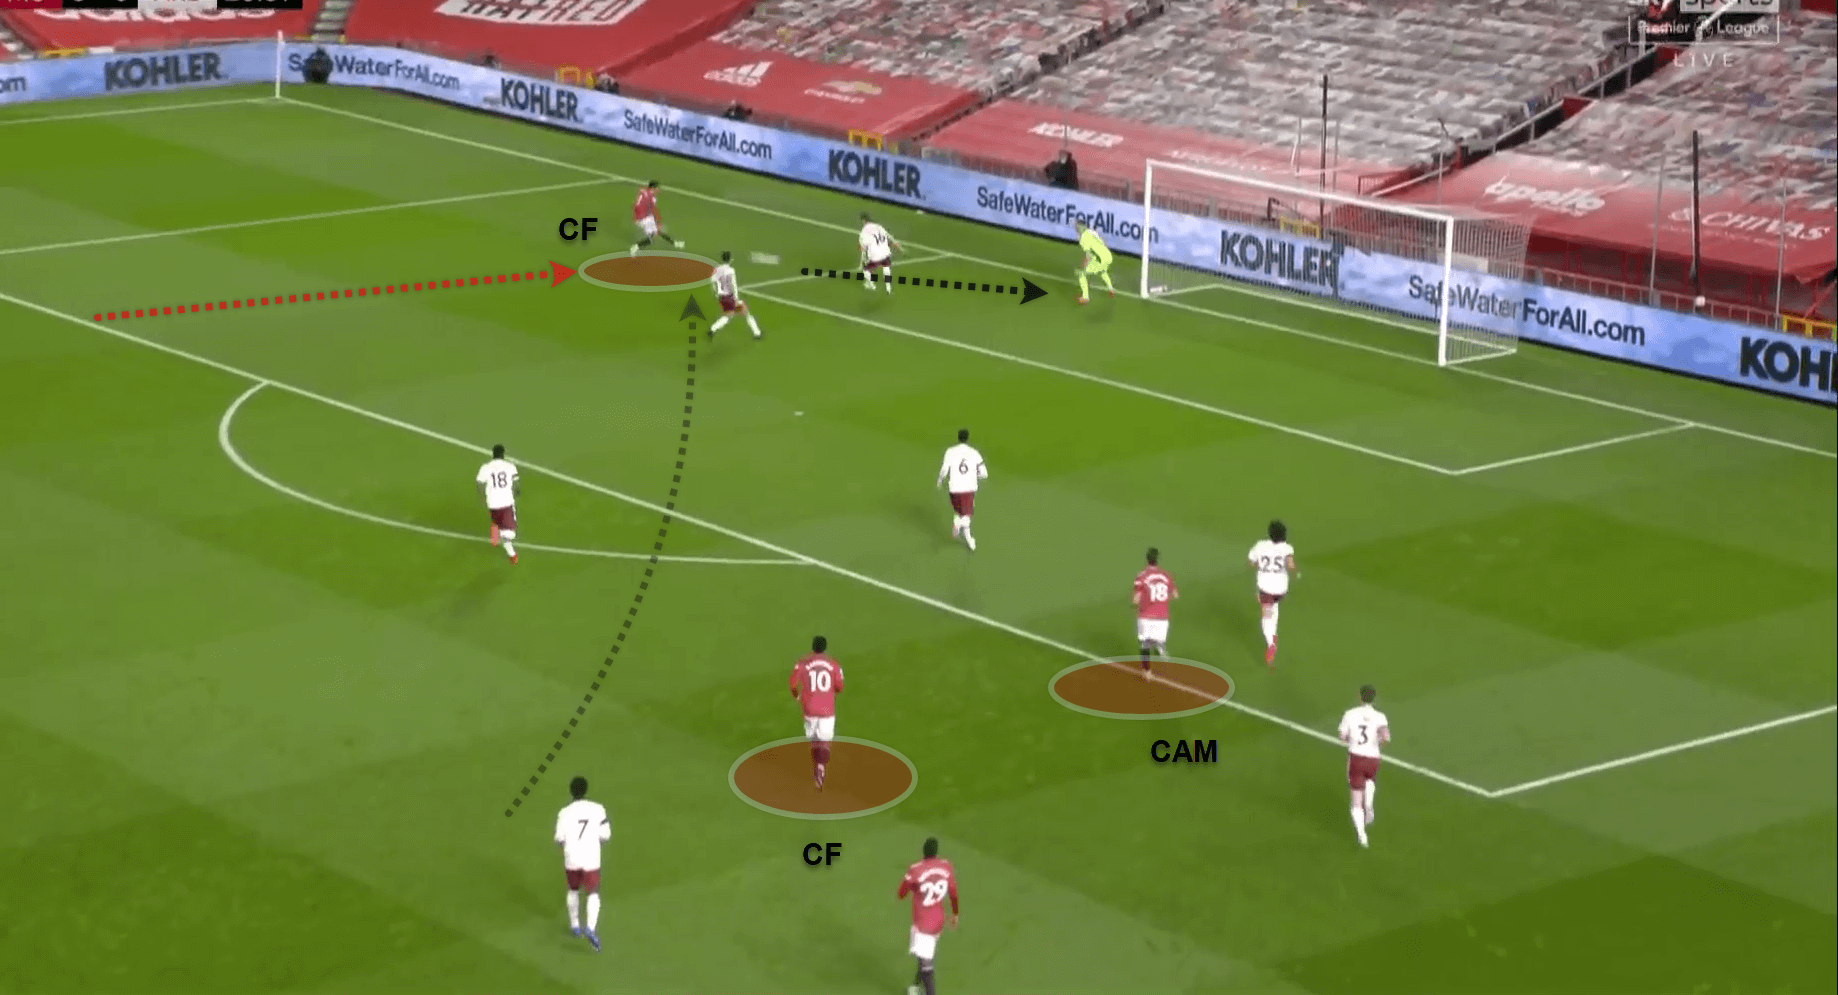 Premier League 2020/21: Manchester United v Arsenal - tactical analysis - tactics